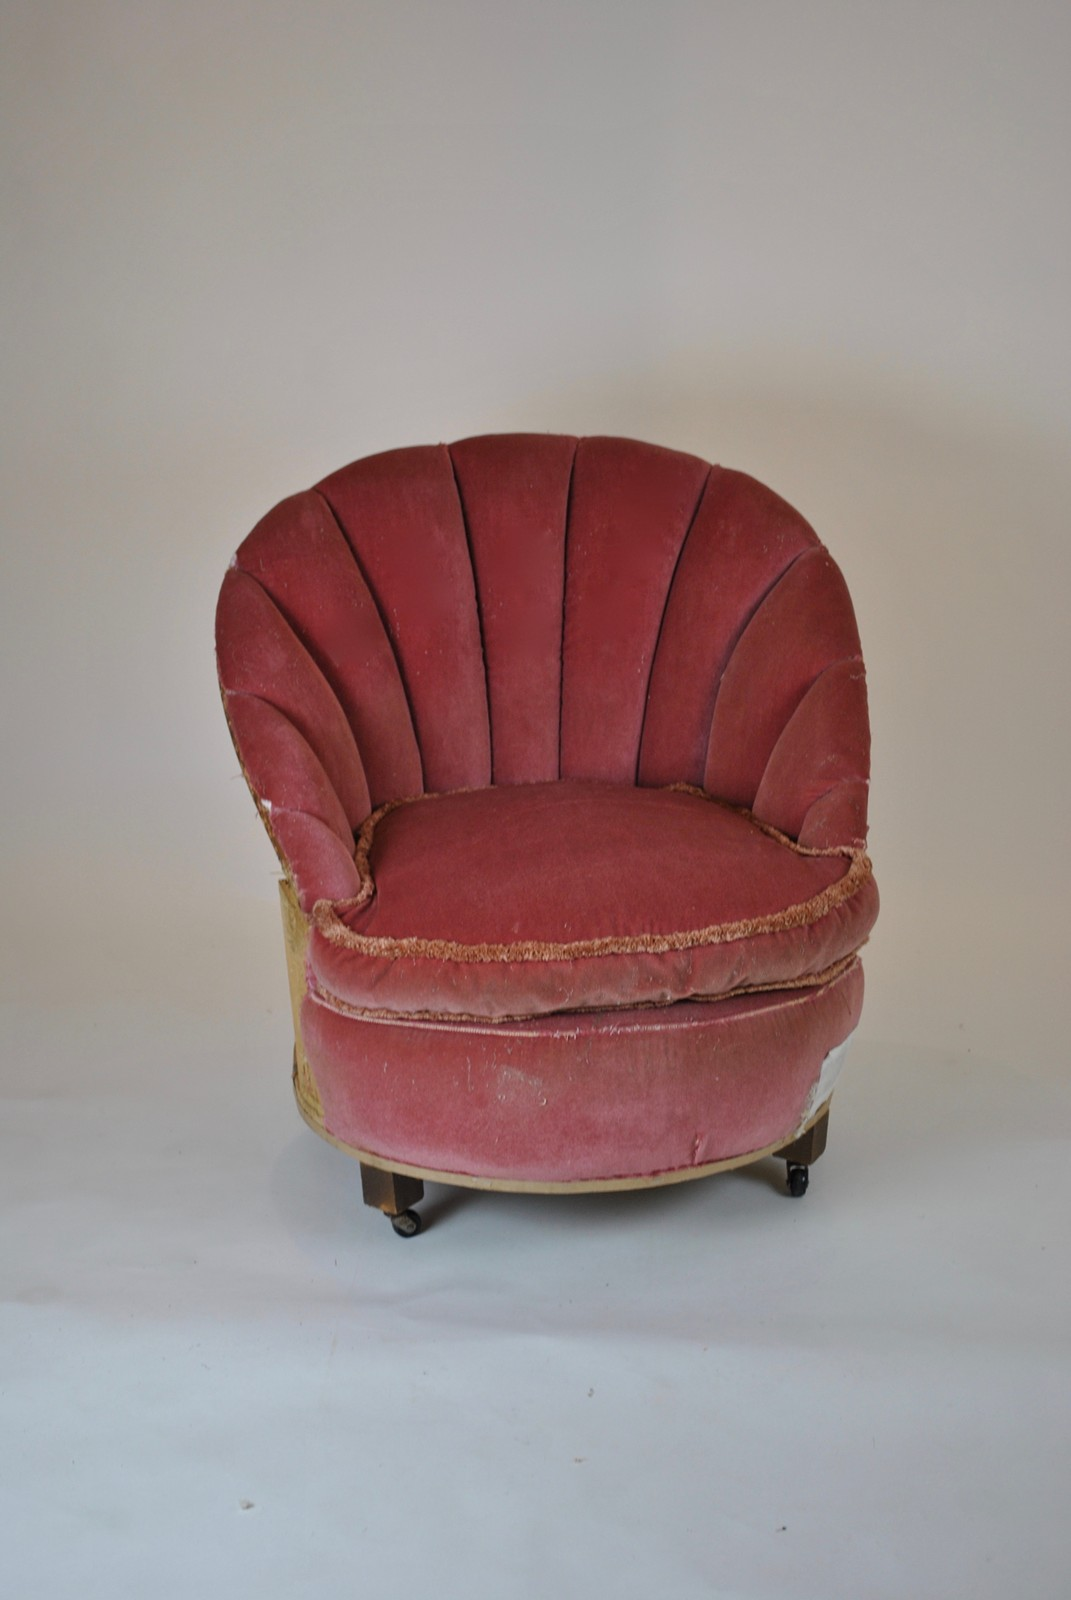 Pink Bedroom Chair Shell Bedroom Chair Decorative Collective